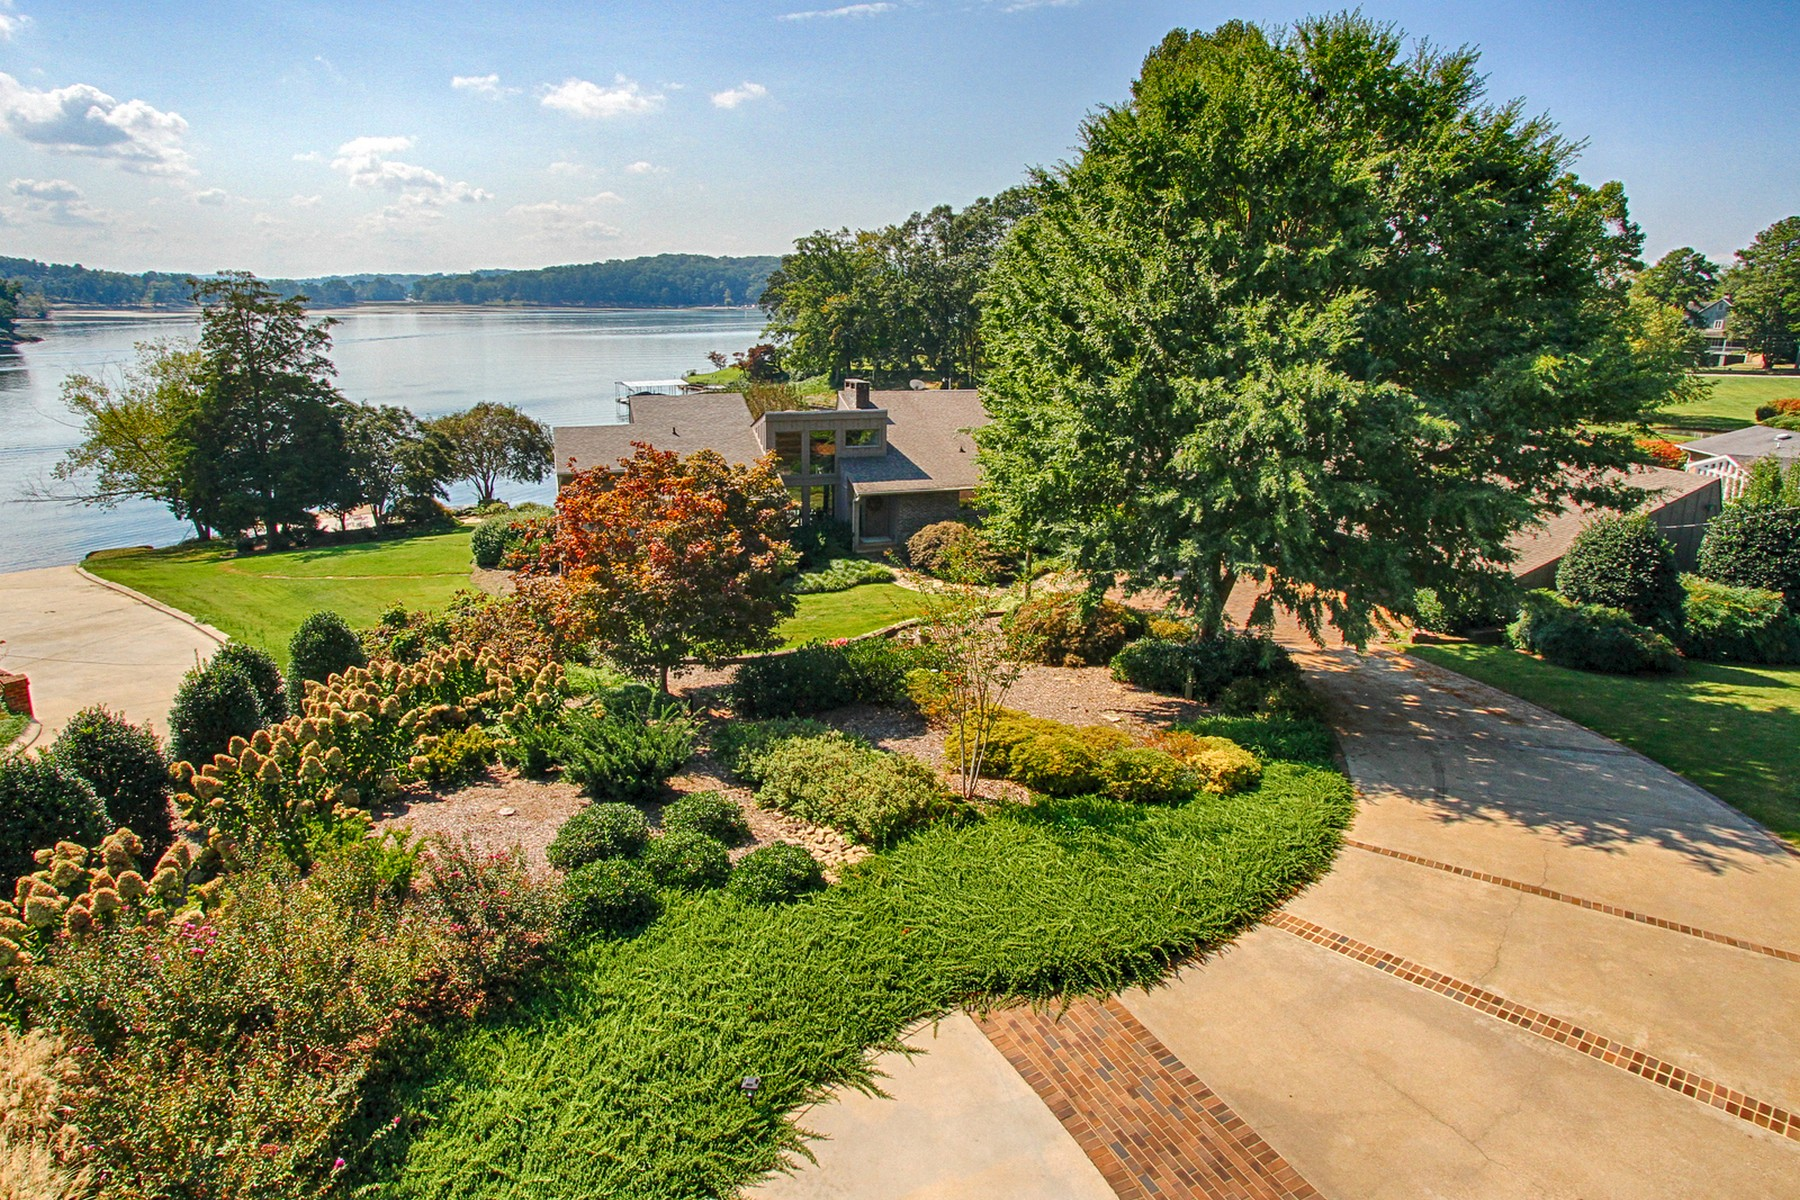 Property For Sale at Lakeside Home in East Tennessee